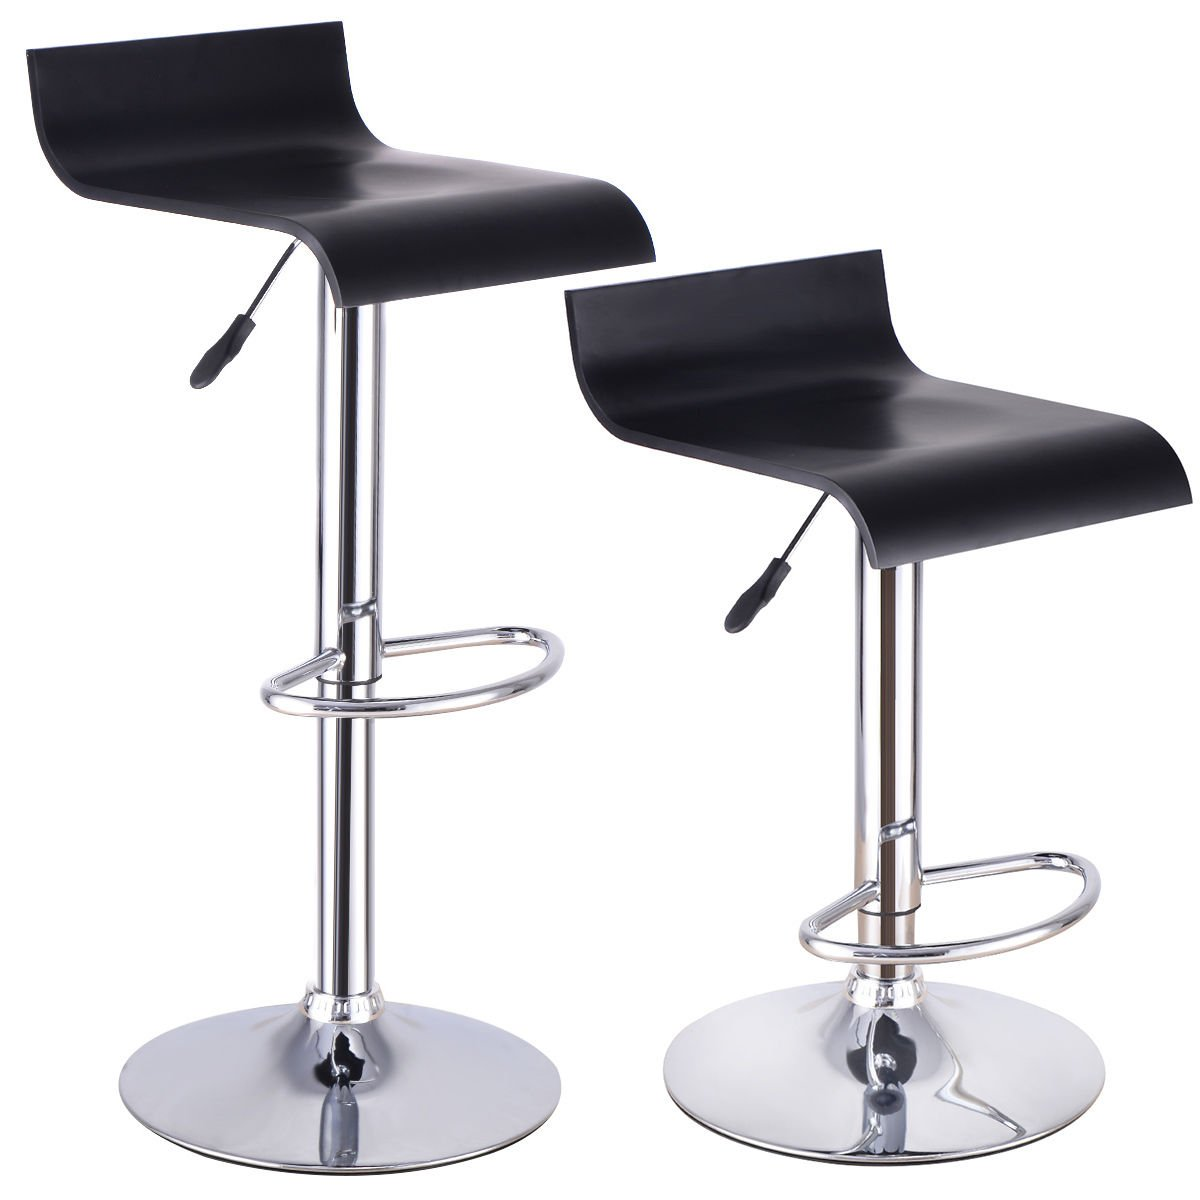 Costway Furniture Modern BentWood Bar Stool Air Lift Adjustable Swivel Dinning Counter Chair with Black Seat, Set Of 2